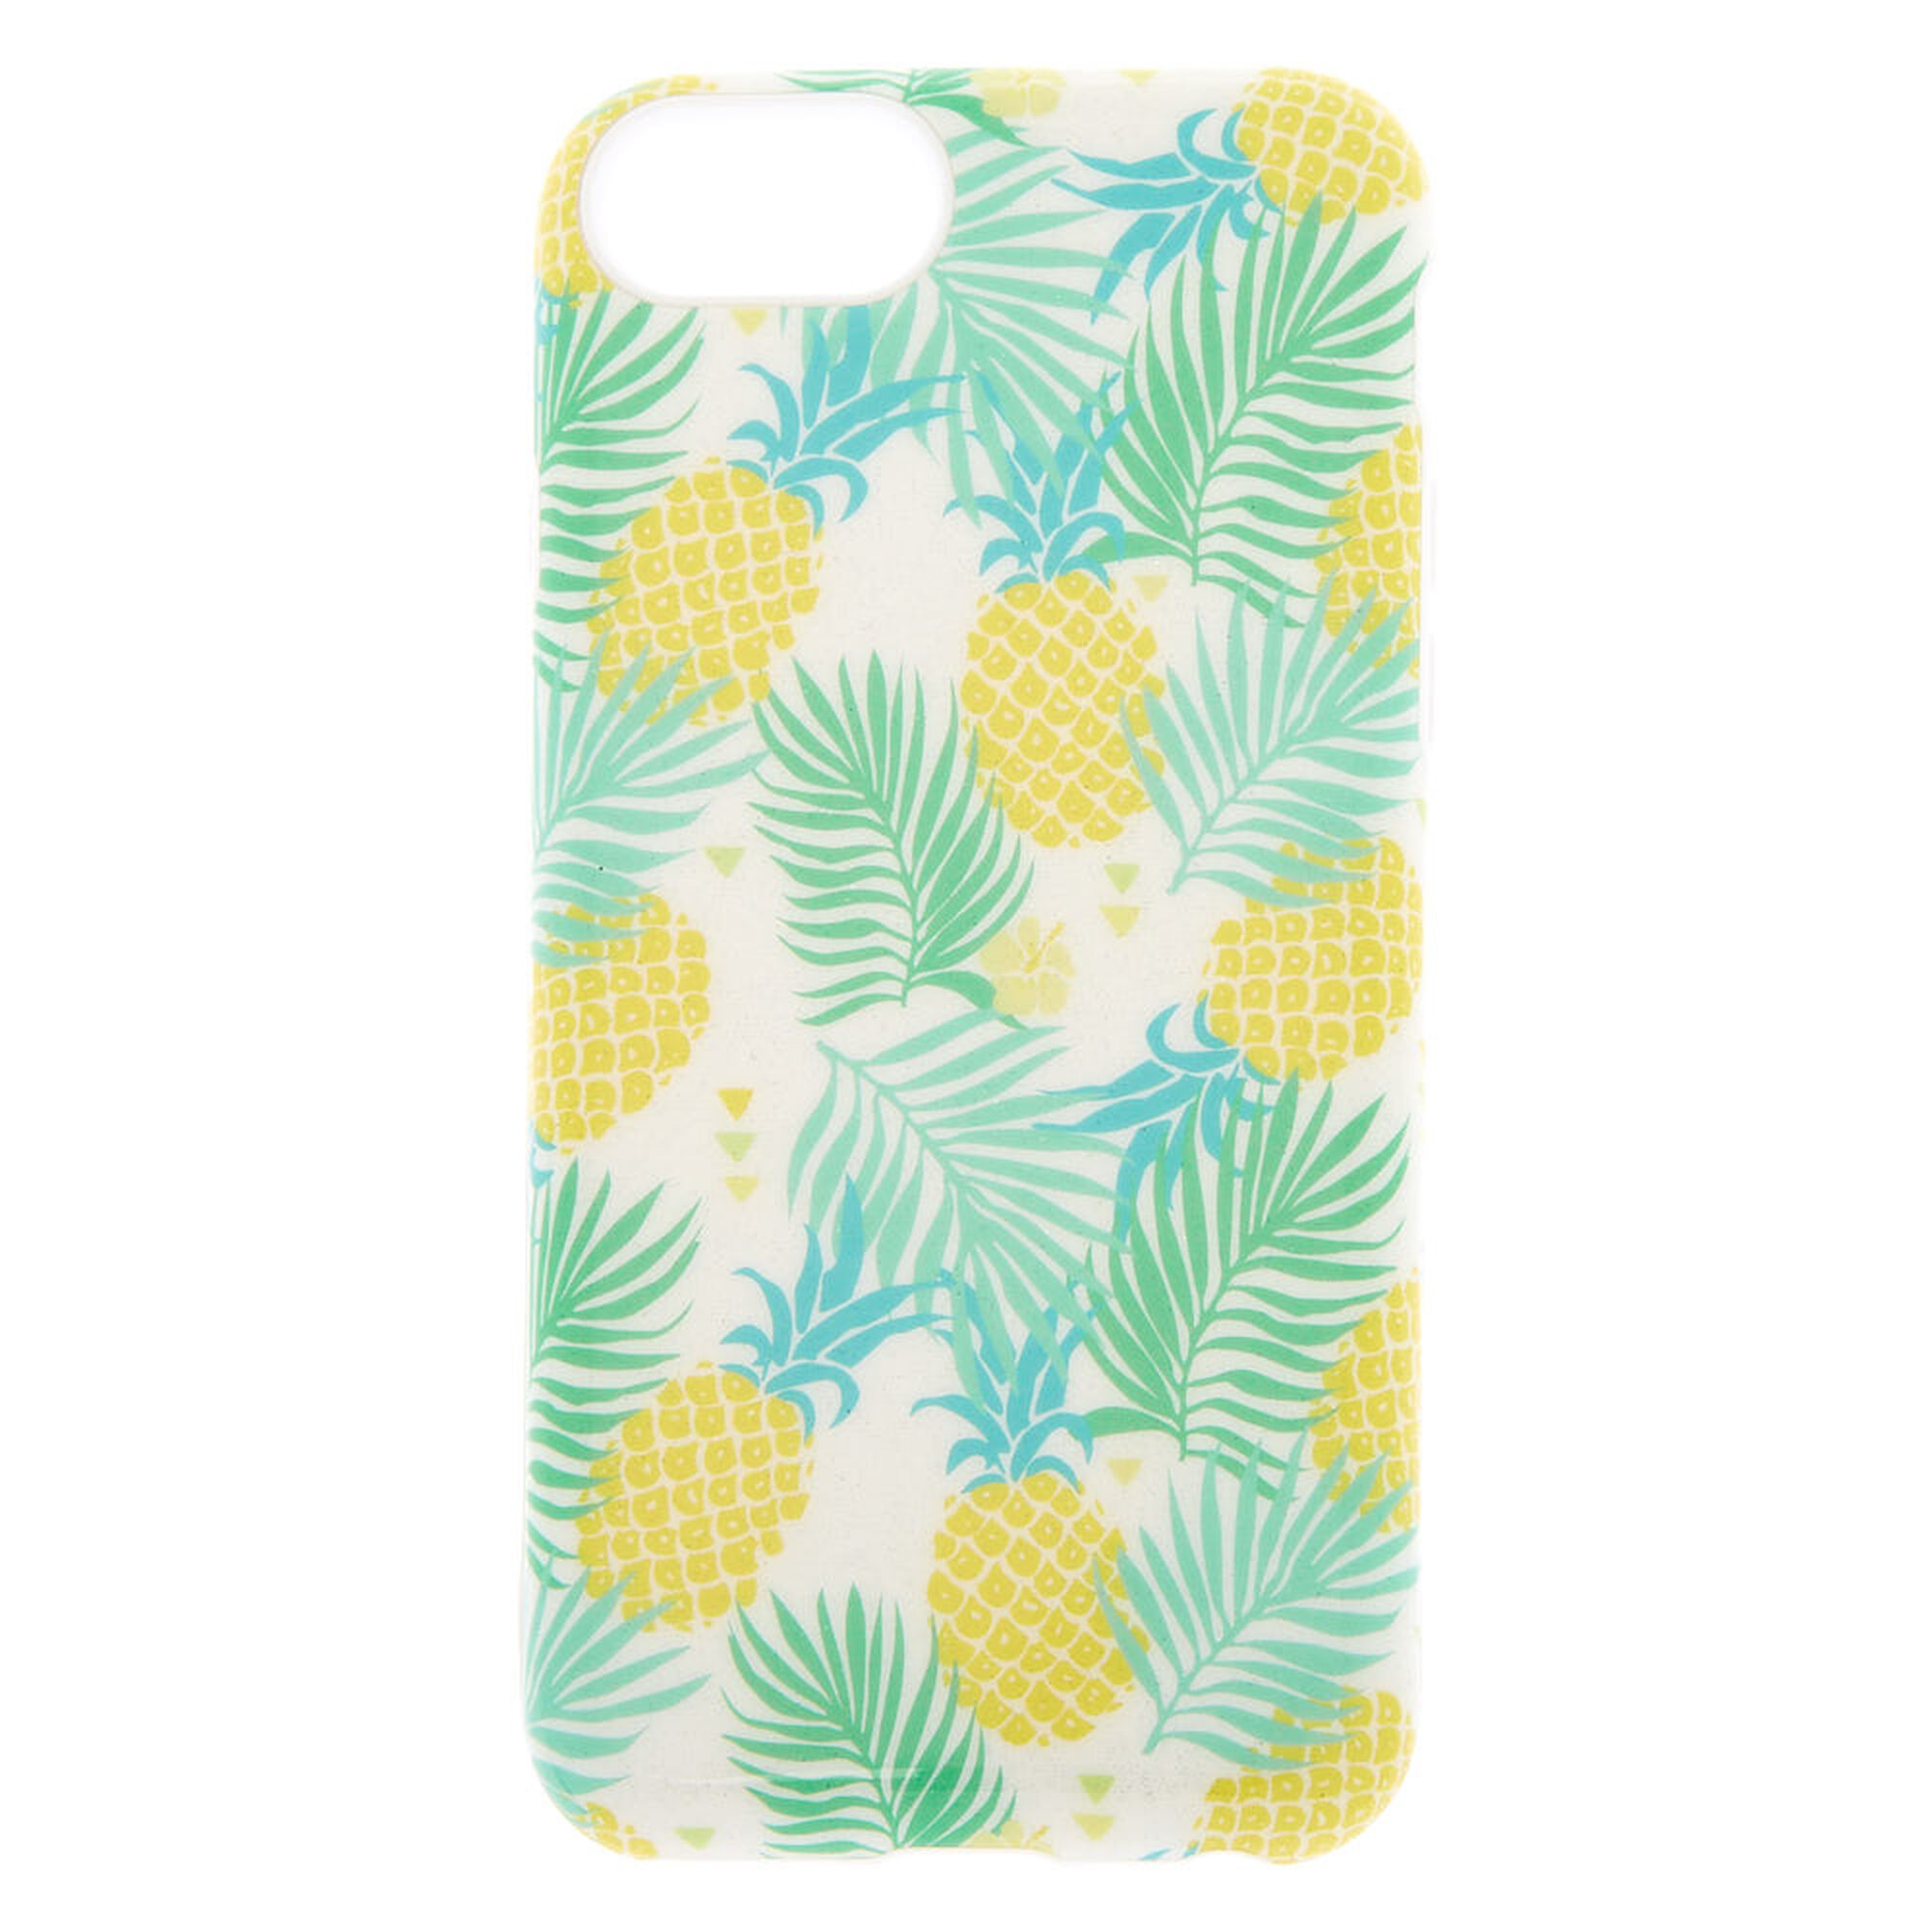 free shipping f0552 5540d Glitter Pineapple Protective Phone Case - Fits iPhone 6/7/8